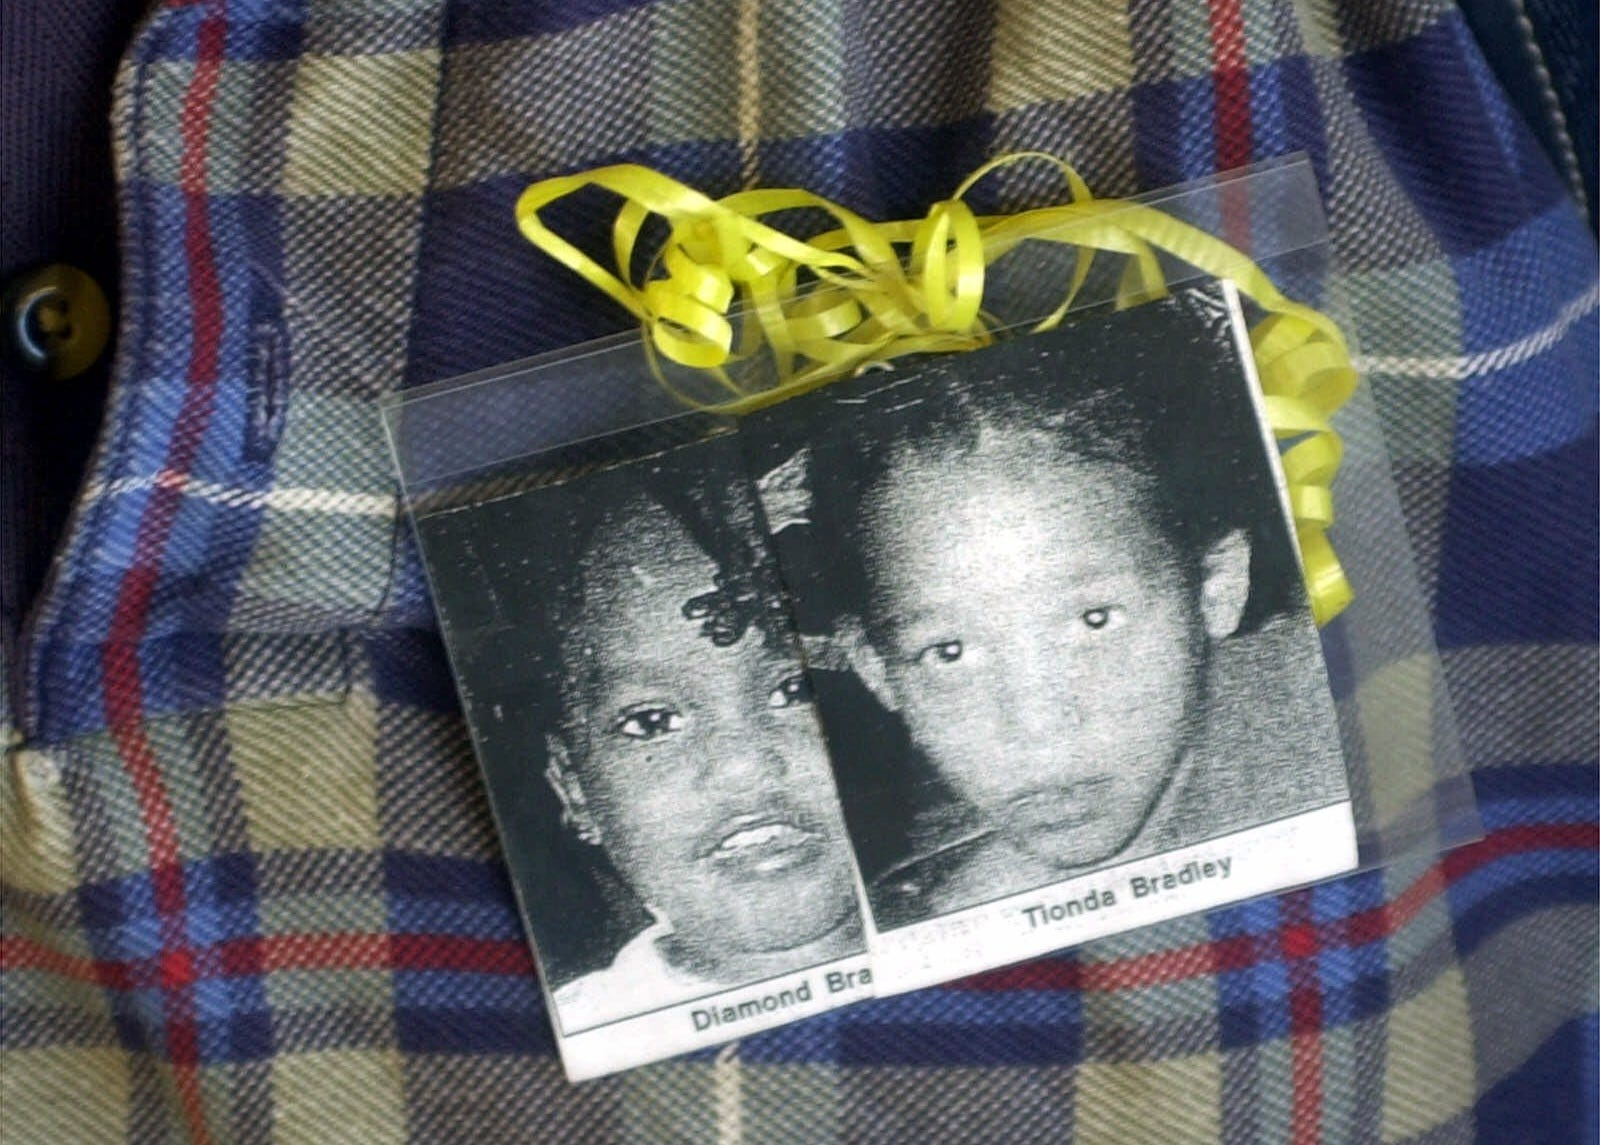 A security guard at Doolittle West Elementary school wears a badge with yellow ribbon holding pictures of missing sisters Diamond and Tionda Bradley Wednesday, July 11, 2001, in Chicago. Neighbors blanketed the area with leaflets and police searched far and wide for the girls.